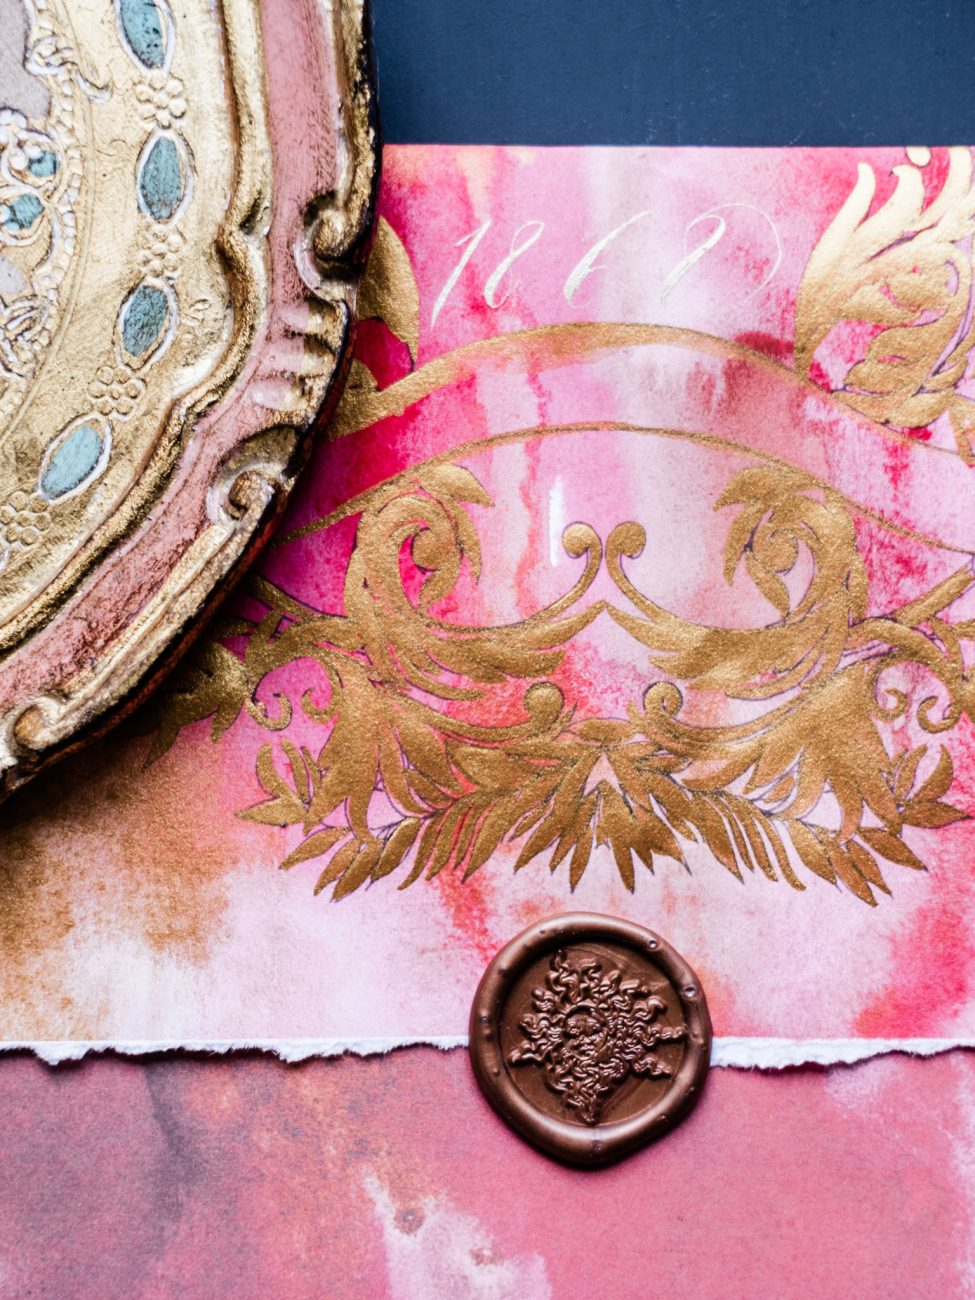 High end wedding stationery showing an envelope detail